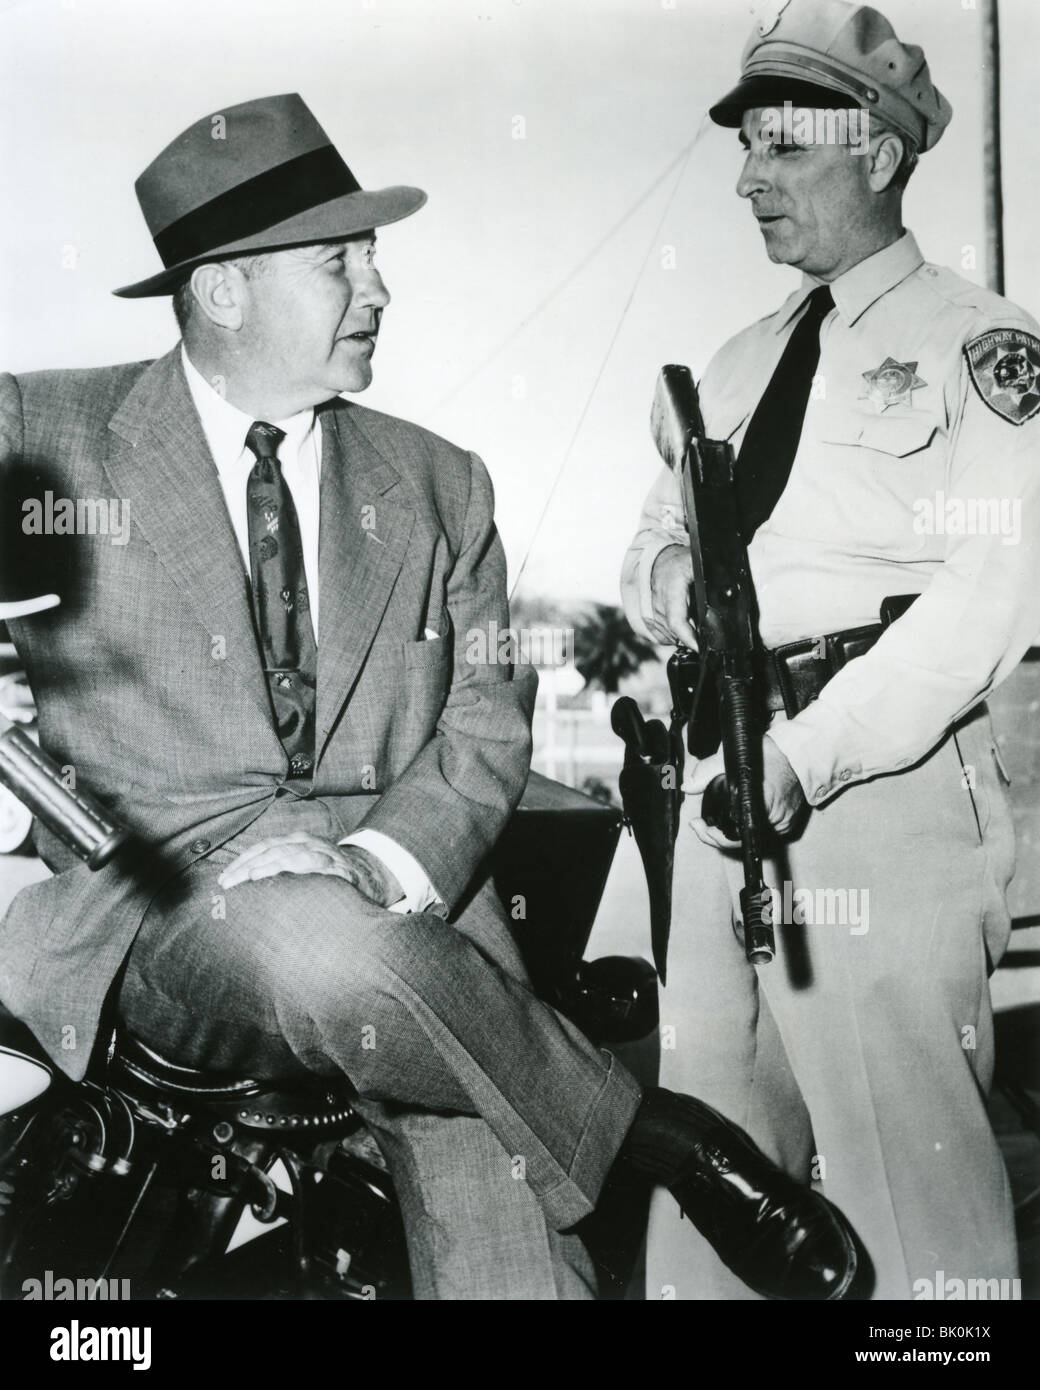 Highway Patrol Tv Show >> HIGHWAY PATROL - US ZIV TV series 1955-59 with Broderick Crawford at Stock Photo, Royalty Free ...